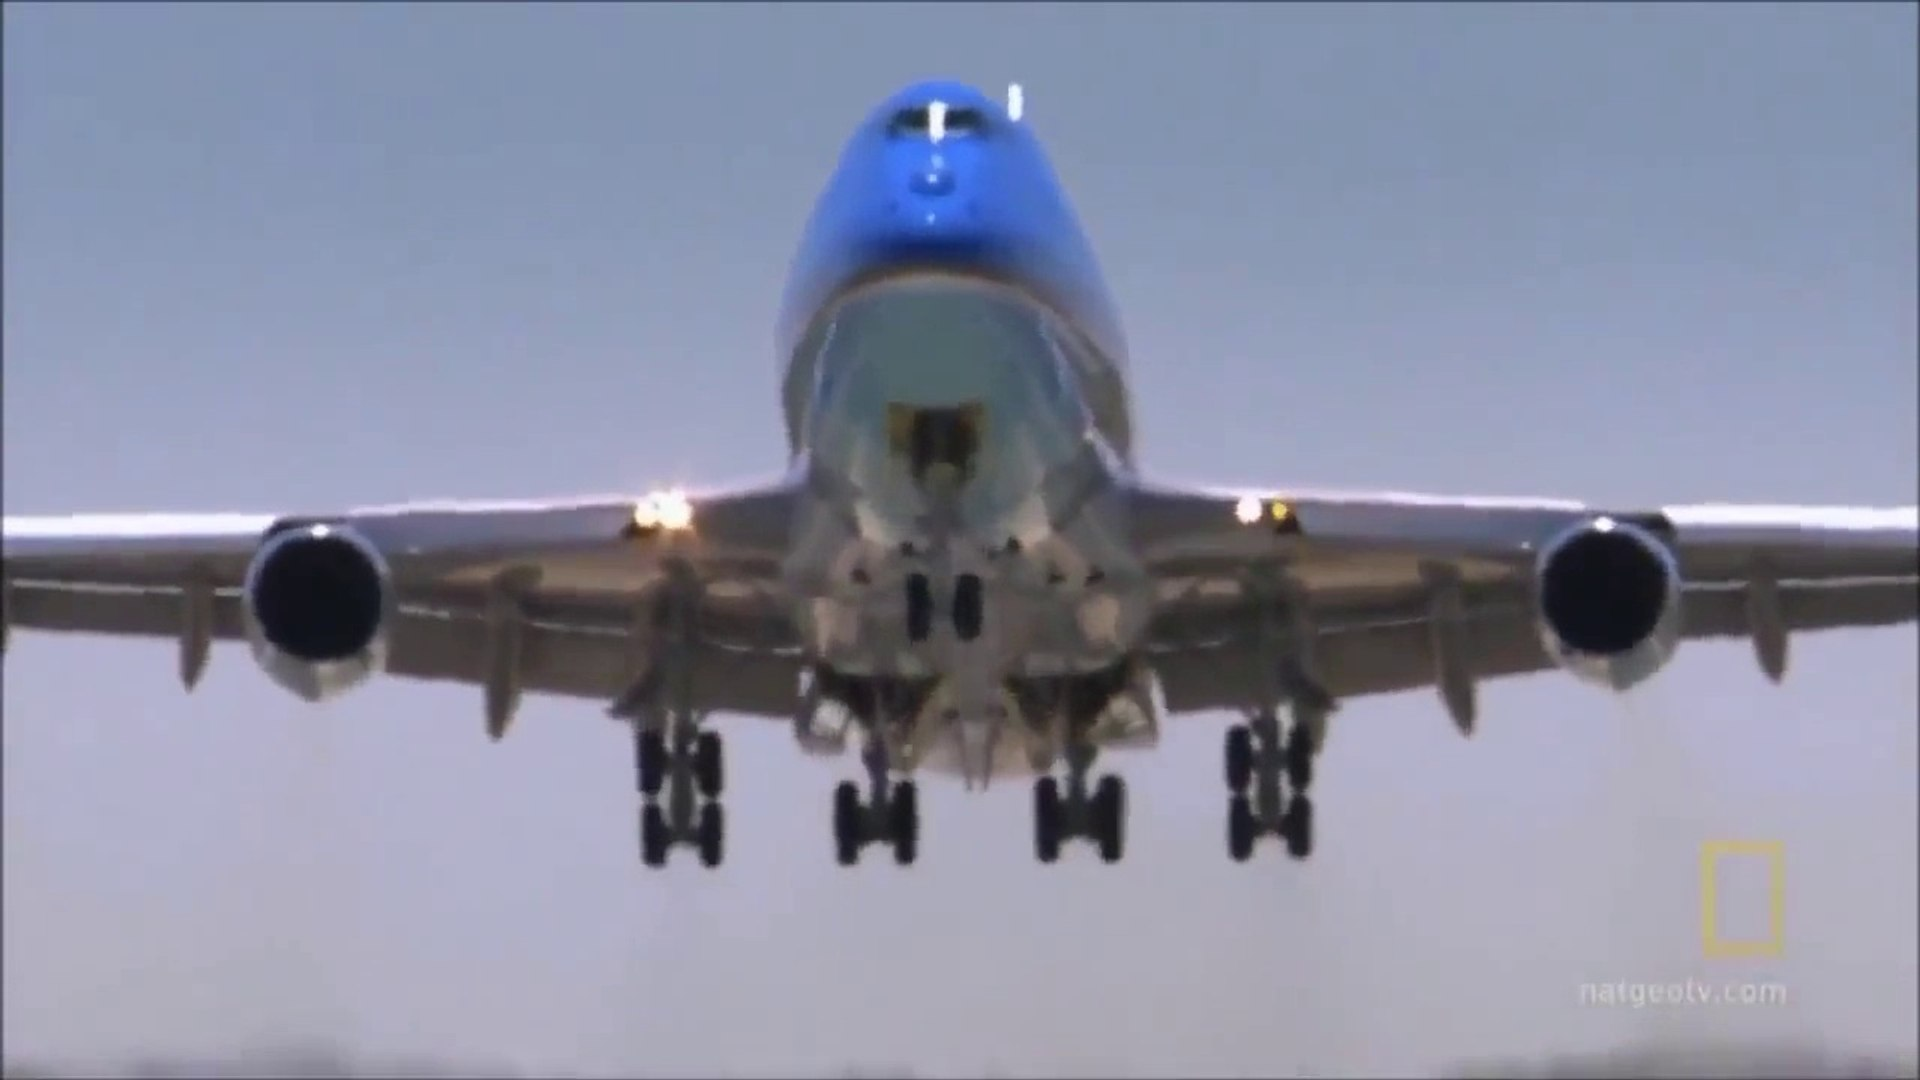 Extreme Aircrafts - Air Force One